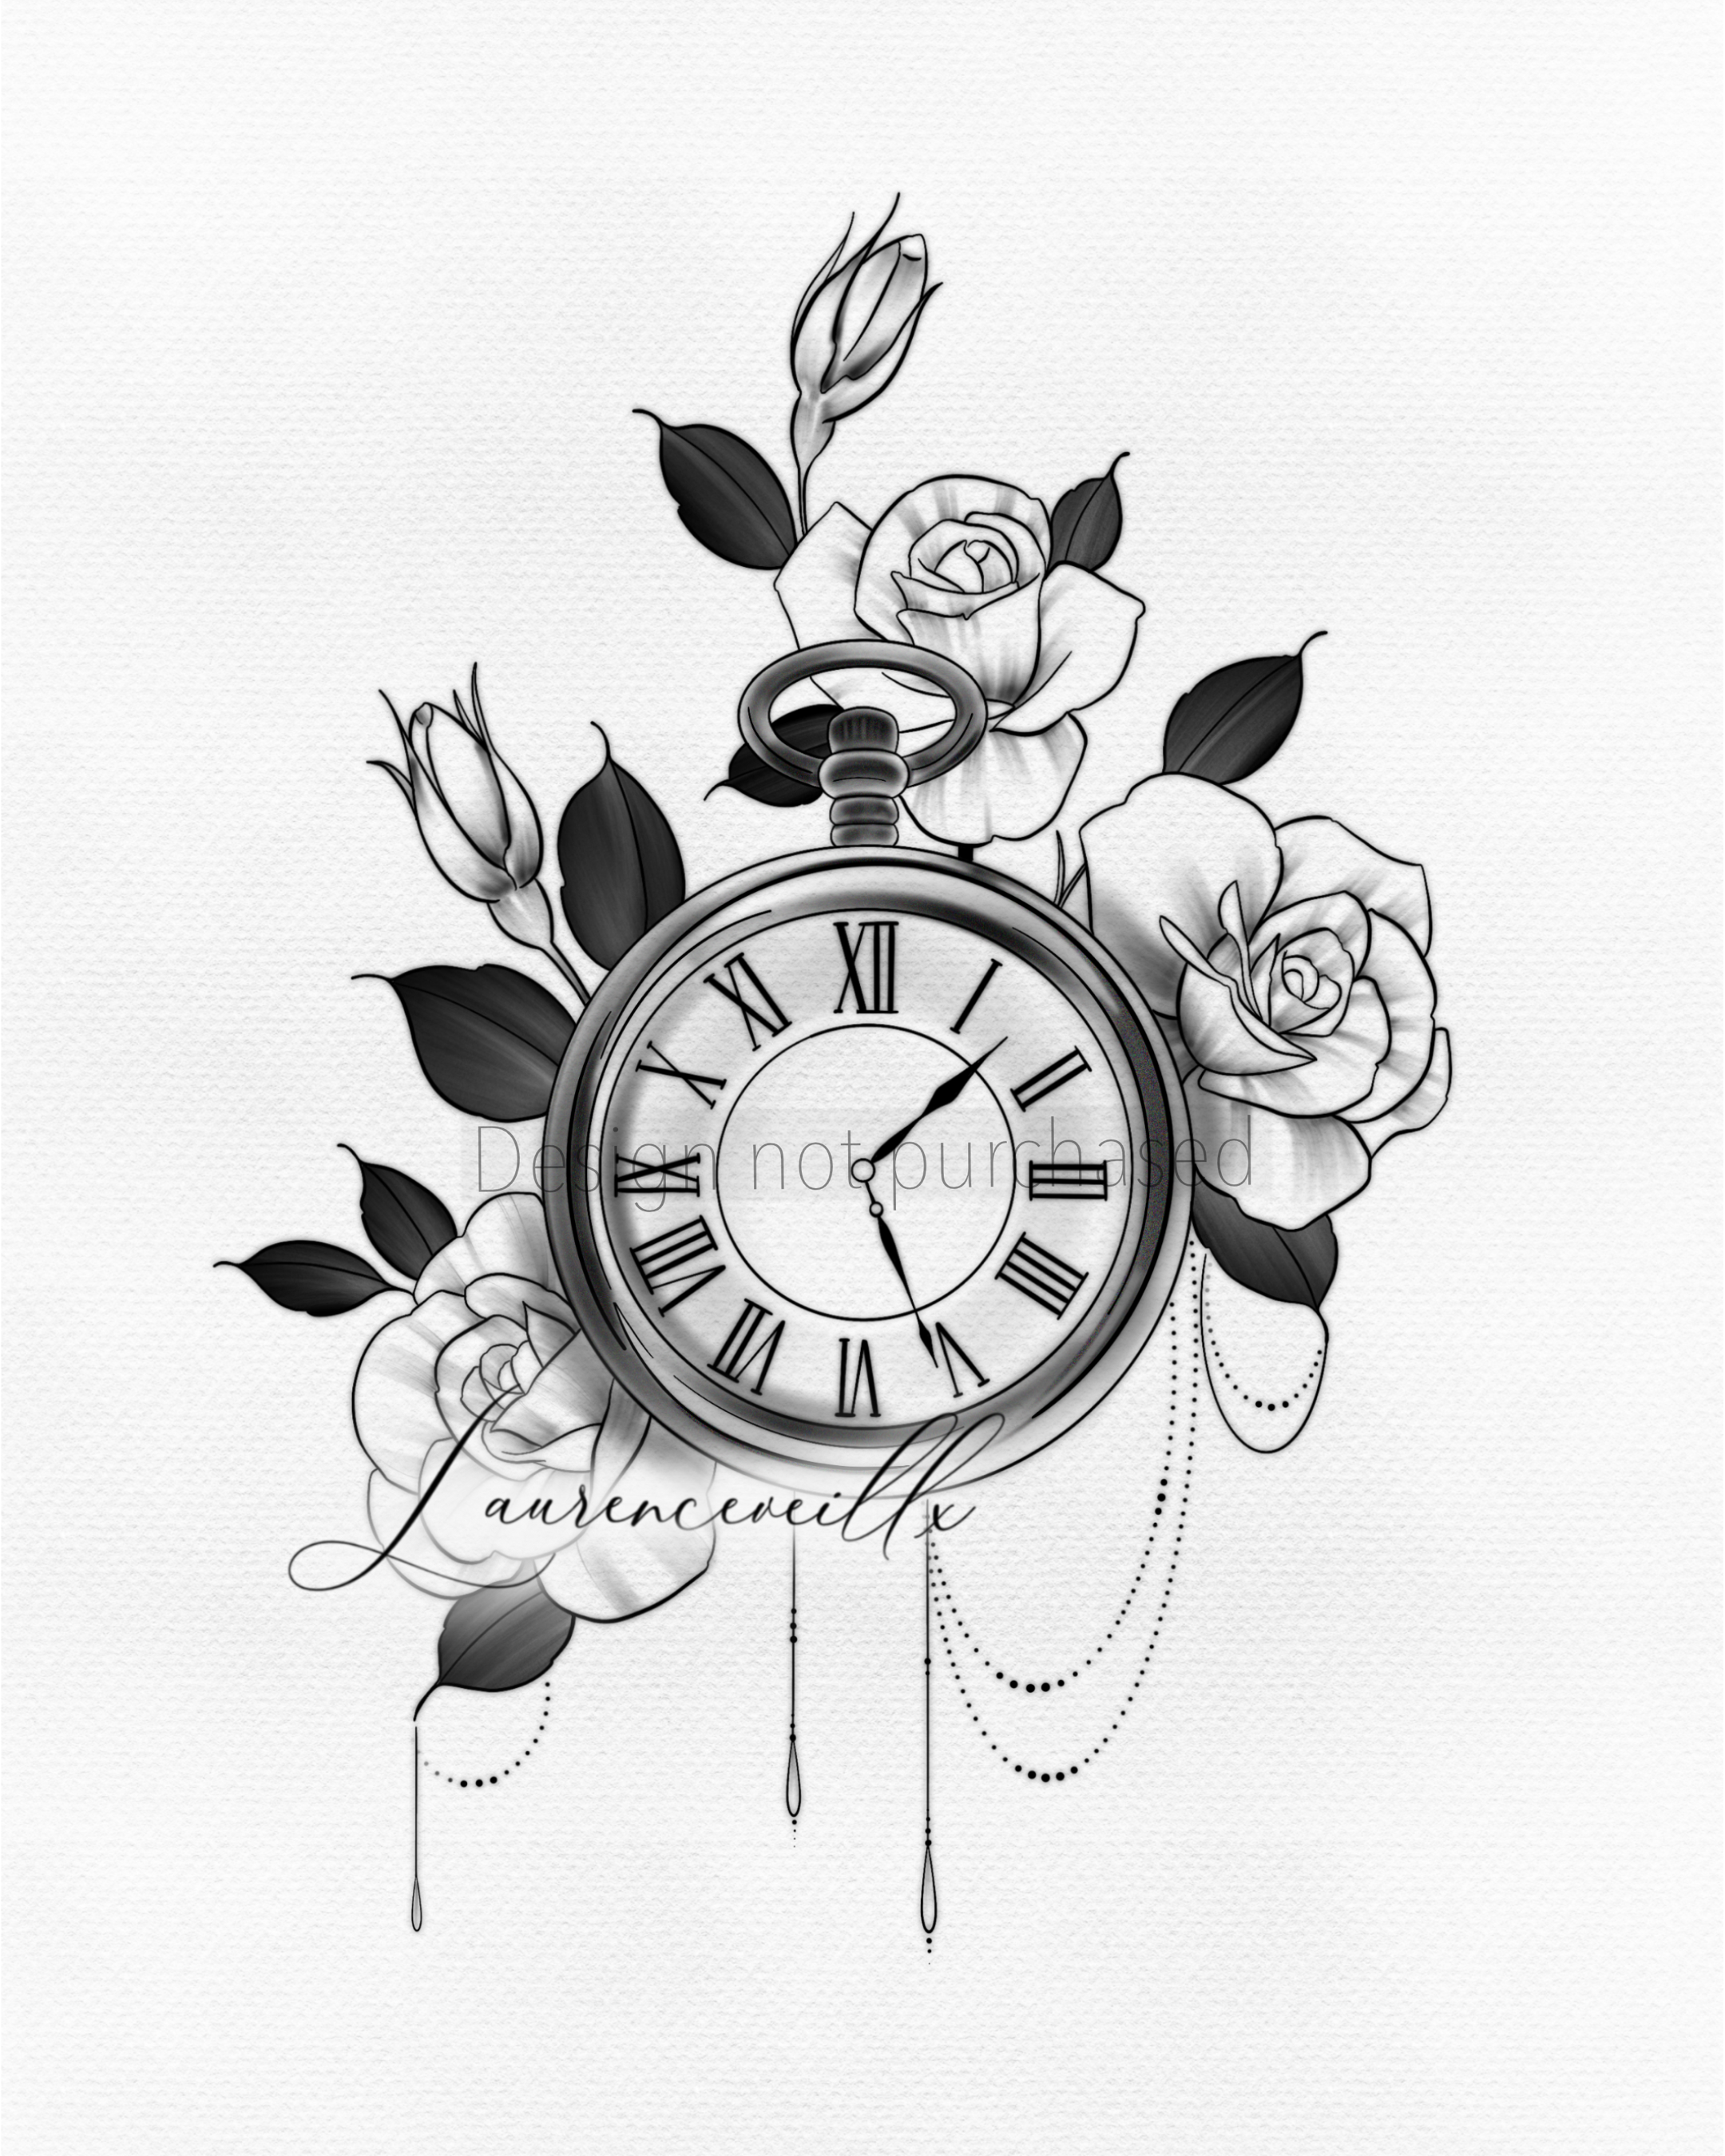 Instant Download Tattoo Design Clock And Roses Floral Tattoo Printable Stencil Template In 2020 Clock Tattoo Vintage Clock Tattoos Clock Tattoo Design